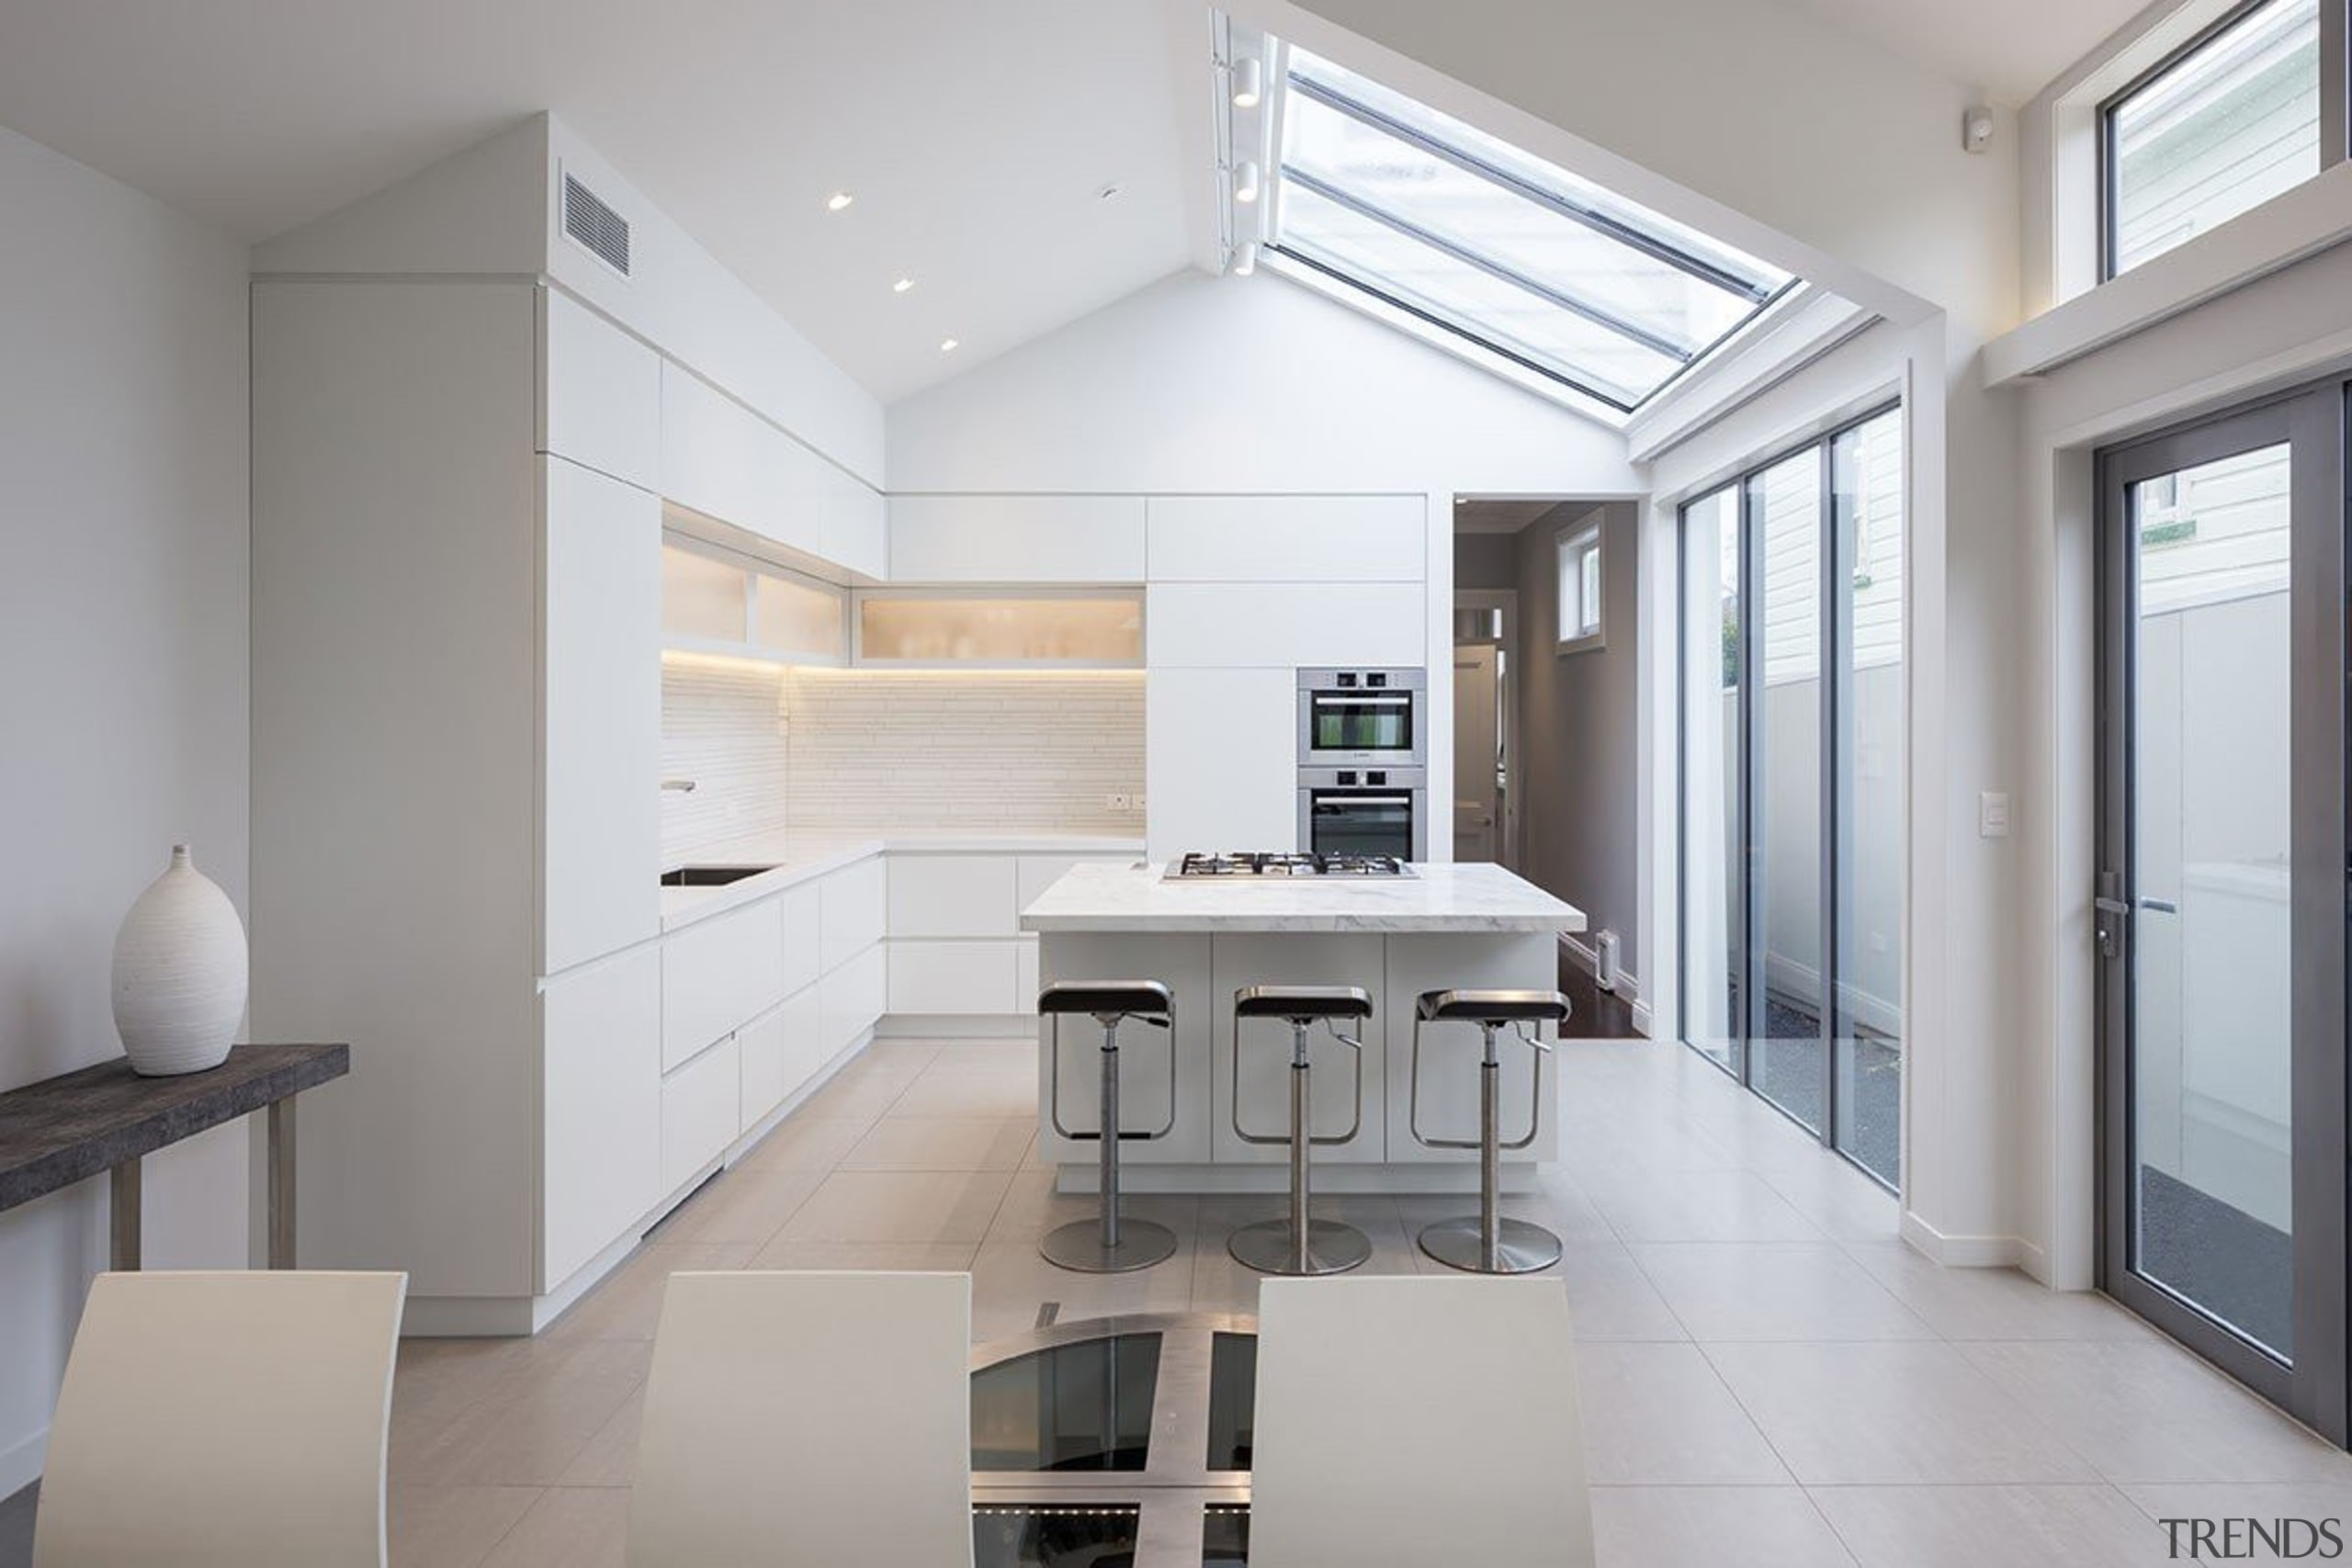 Bonham Interior, AucklandSee the full storyThis kitchen architecture, daylighting, floor, house, interior design, kitchen, real estate, gray, white